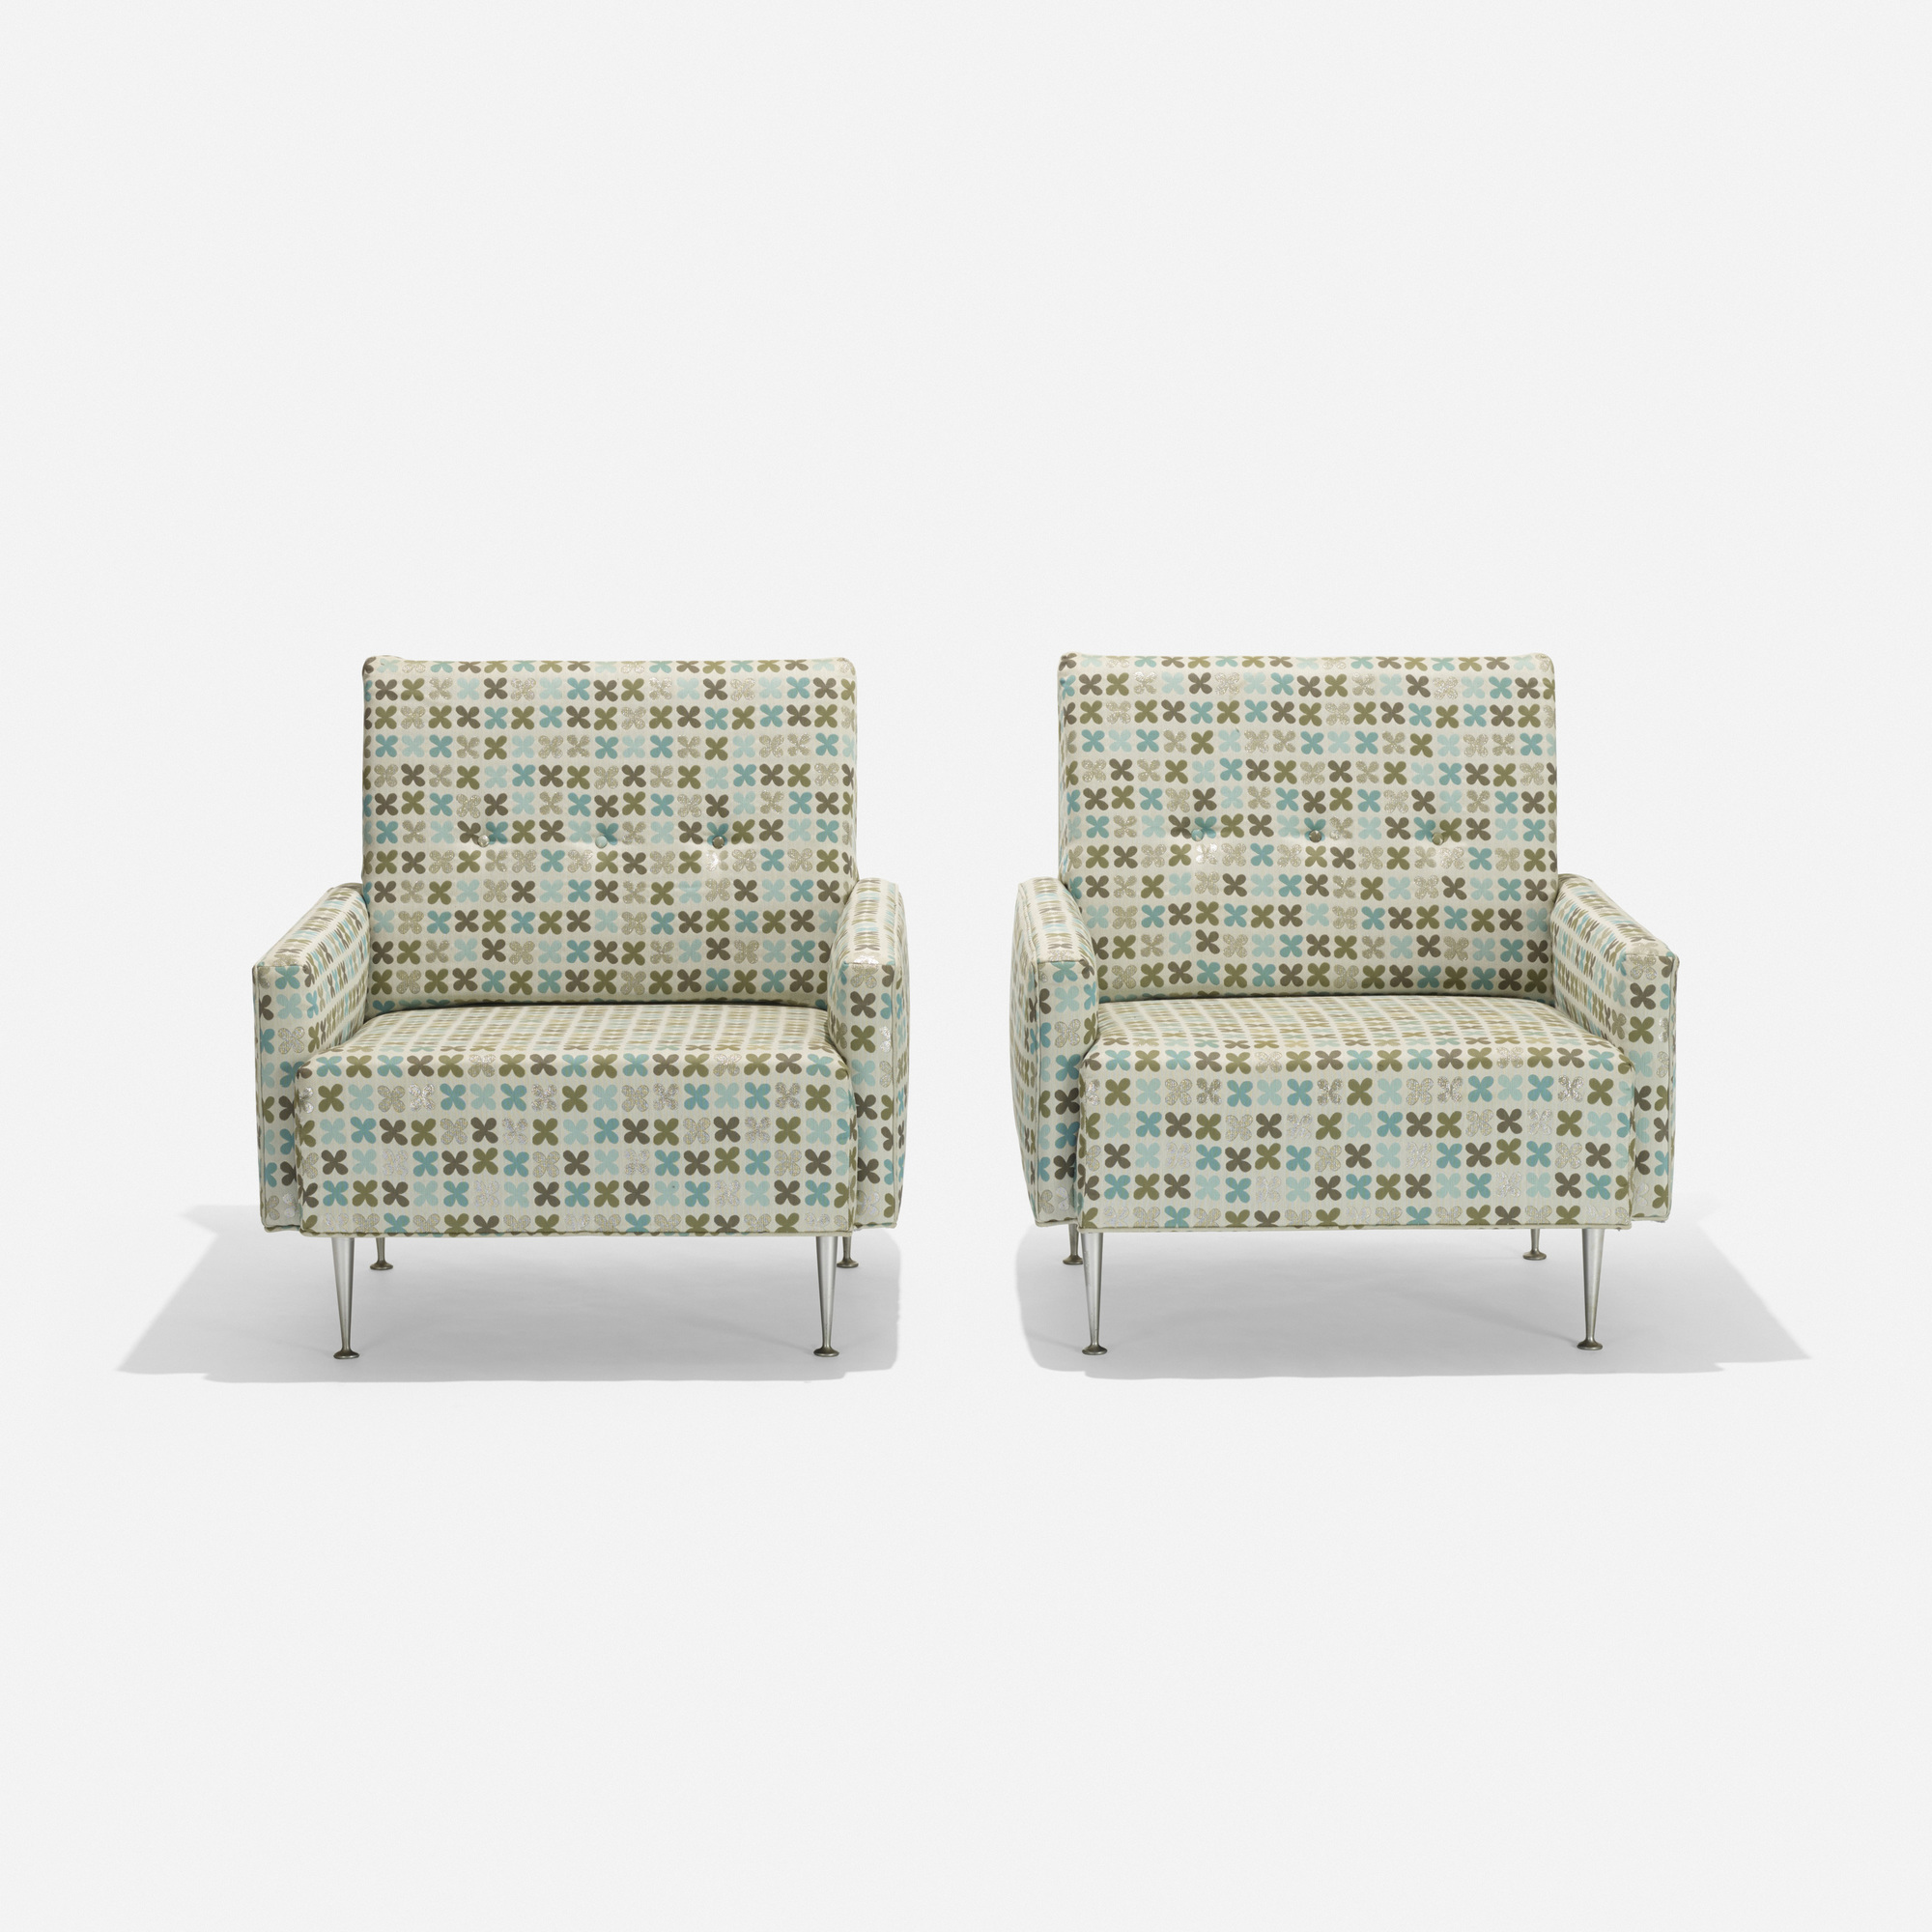 106: George Nelson & Associates / lounge chairs model 5484, pair (2 of 2)